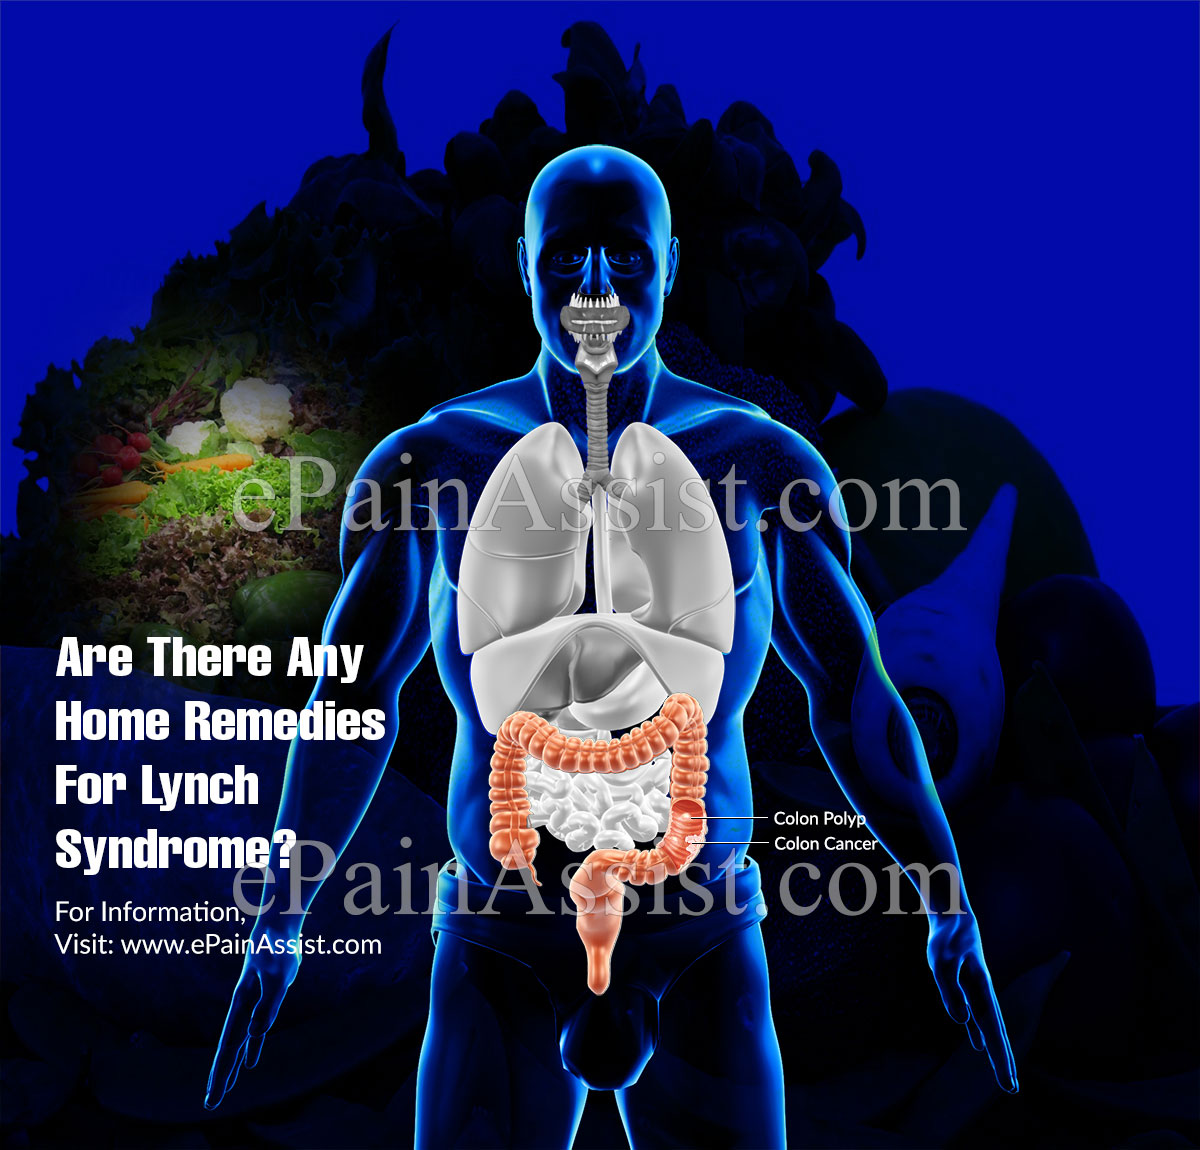 Are There Any Home Remedies For Lynch Syndrome?